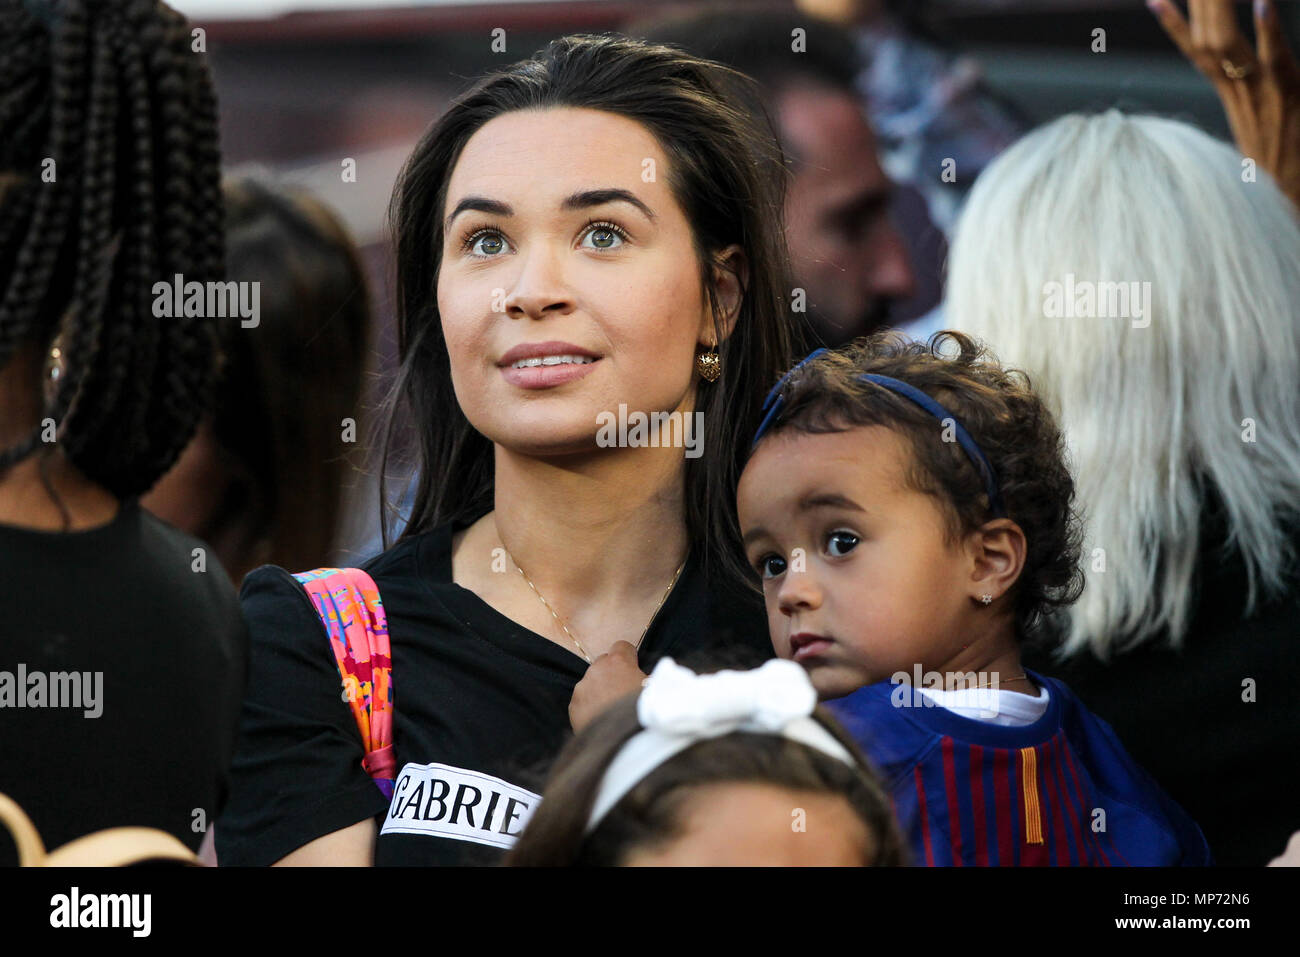 Barcelona, 20th May:  Phillippe Coutinho wife before the 2017/2018 LaLiga Santander Round 38 game between FC Barcelona and Real Sociedad at Camp Nou on May 20, 2018 in Barcelona, Spain. - Stock Image